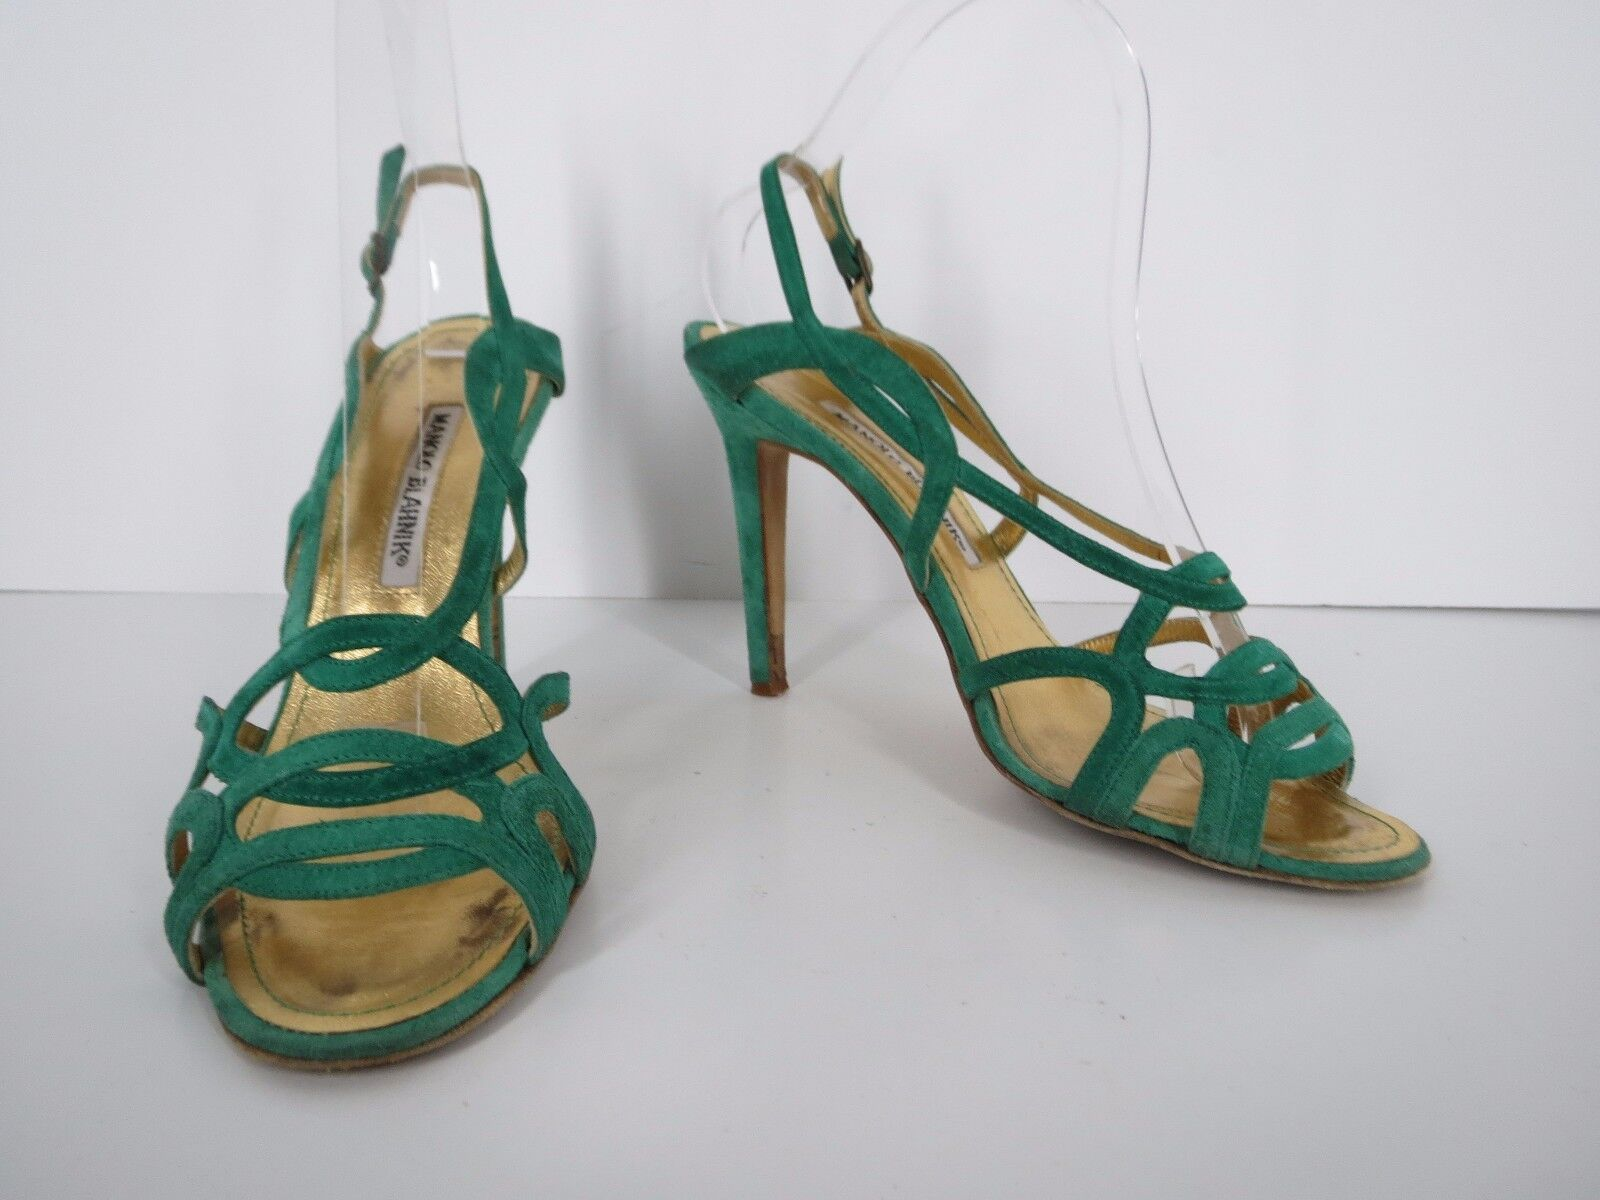 Manolo Blahnik Sandals Heels Size 7.5 37.5 Green Suede Strappy Criss Cross Italy